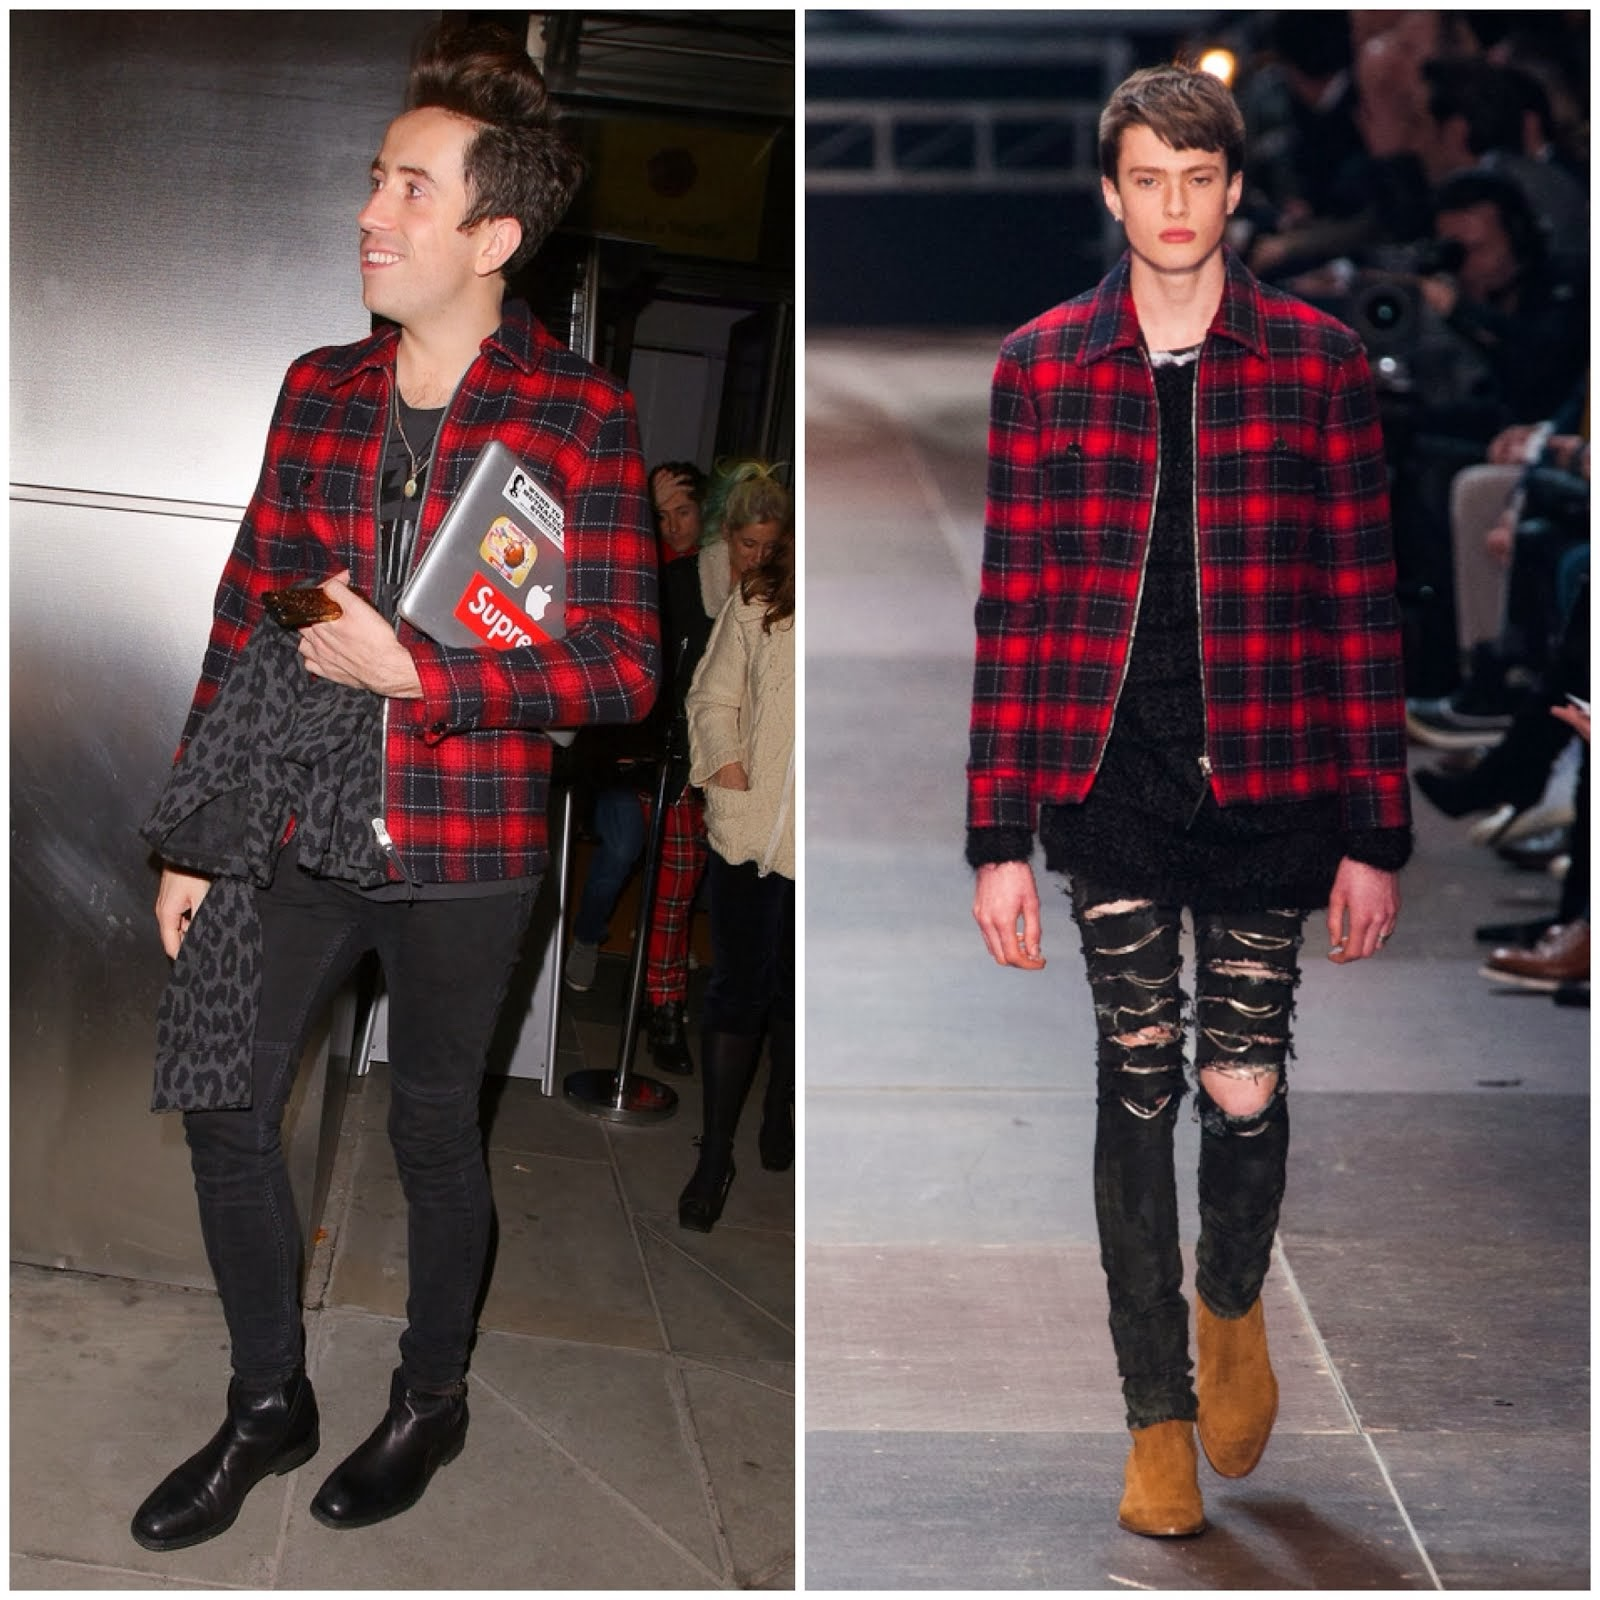 Nick Grimshaw in Saint Laurent Red wool classic plaid jacket - Sushi Samba restaurant's first anniversary party, London